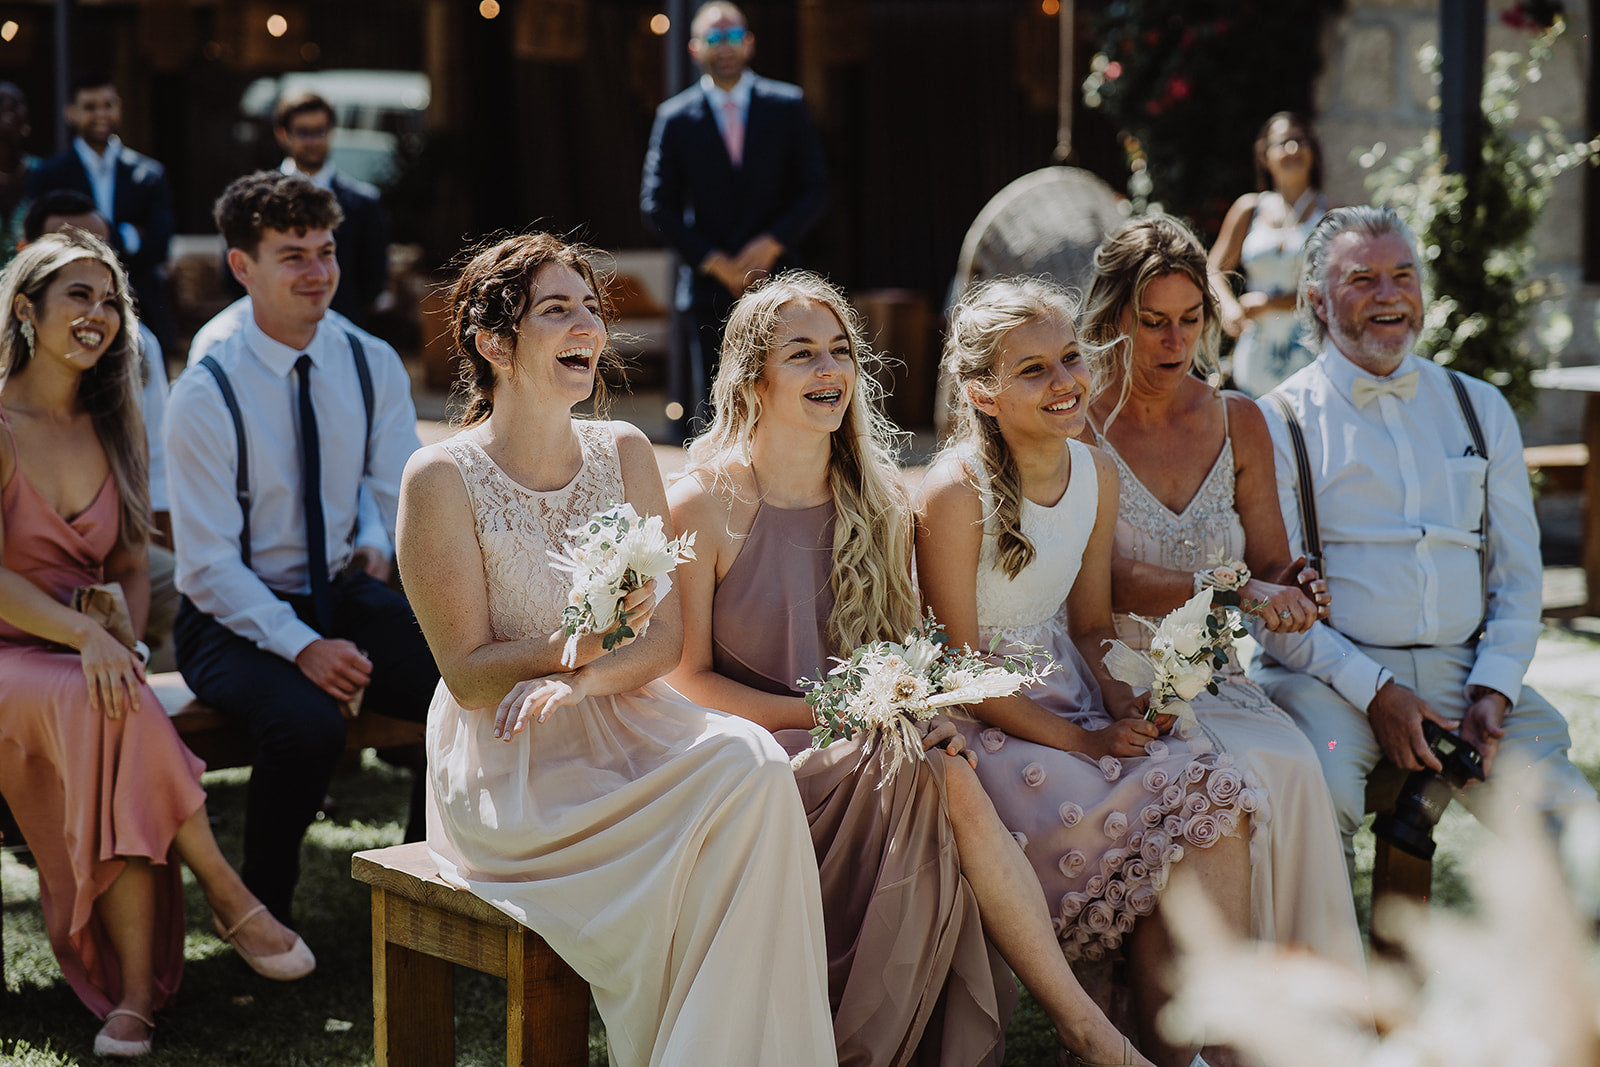 The Bridesmaids and Mother of the Bride seated at the outdoor ceremony, wearing their pre-loved dresses, laughing.